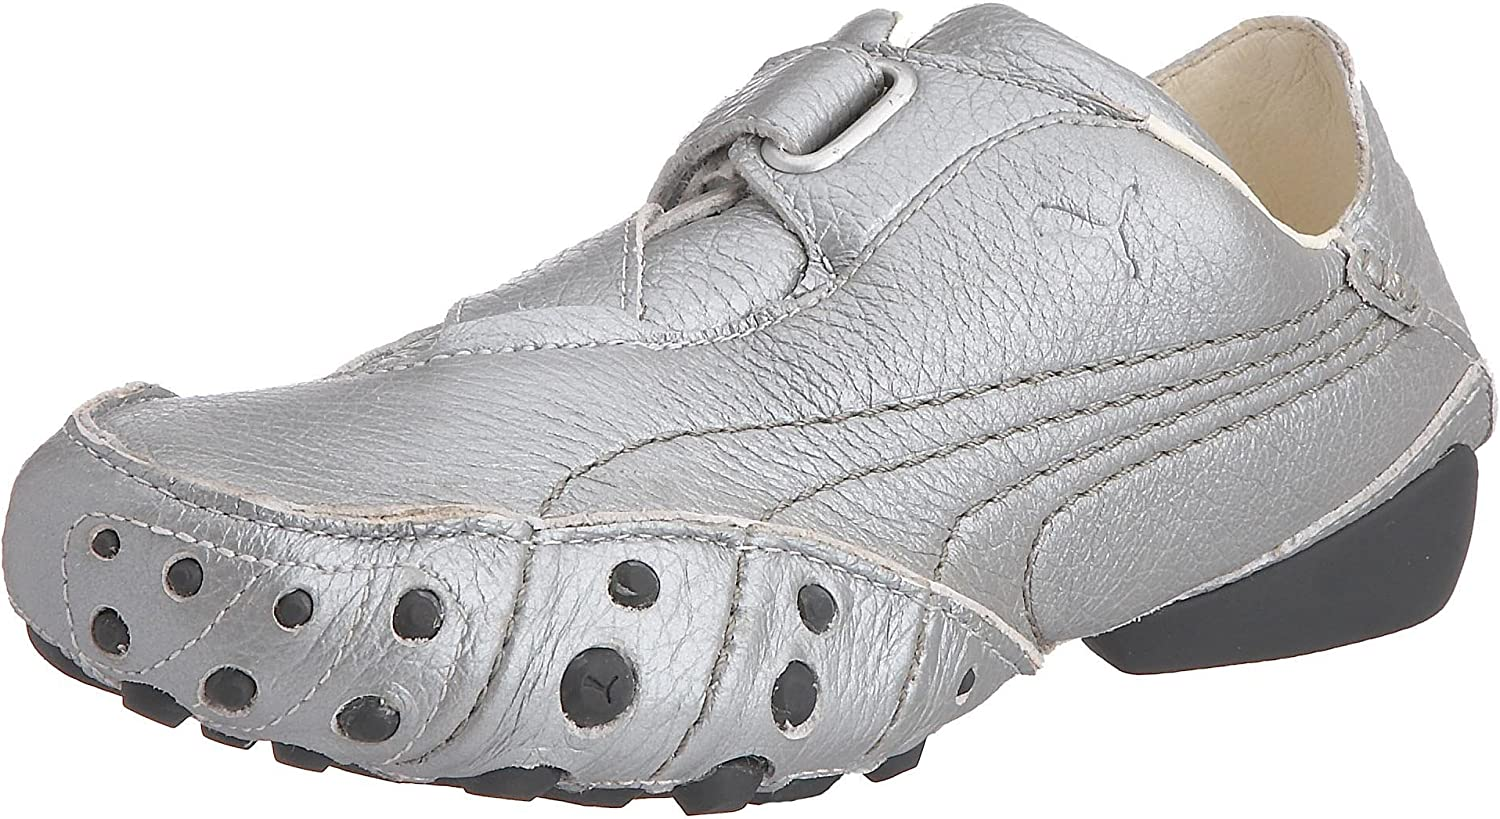 PUMA Amoko Vintage L Womens Leather Fitness Sneakers shoes